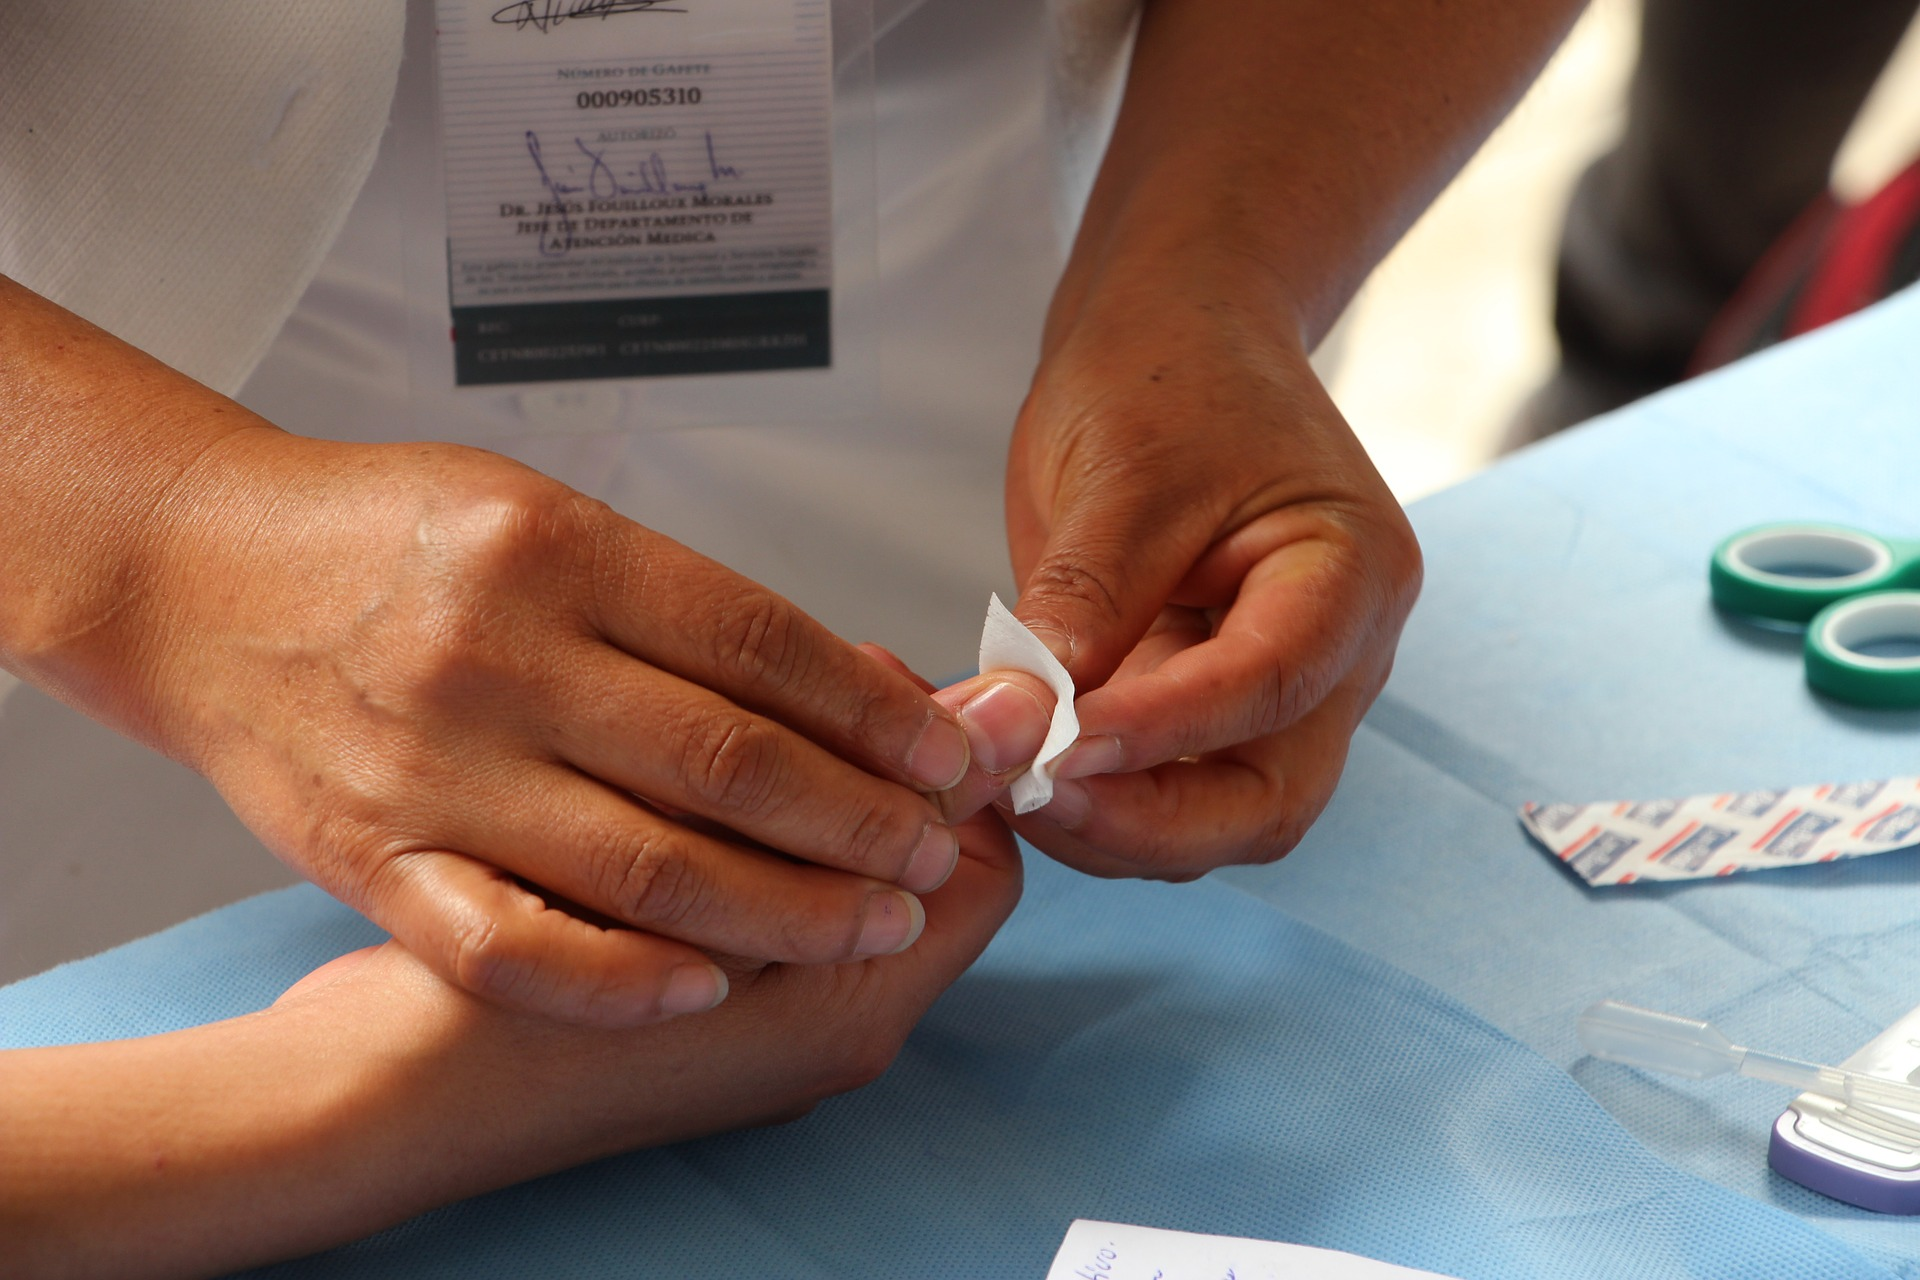 A medical professional's hands hold a small gauze square to a person's thumb.